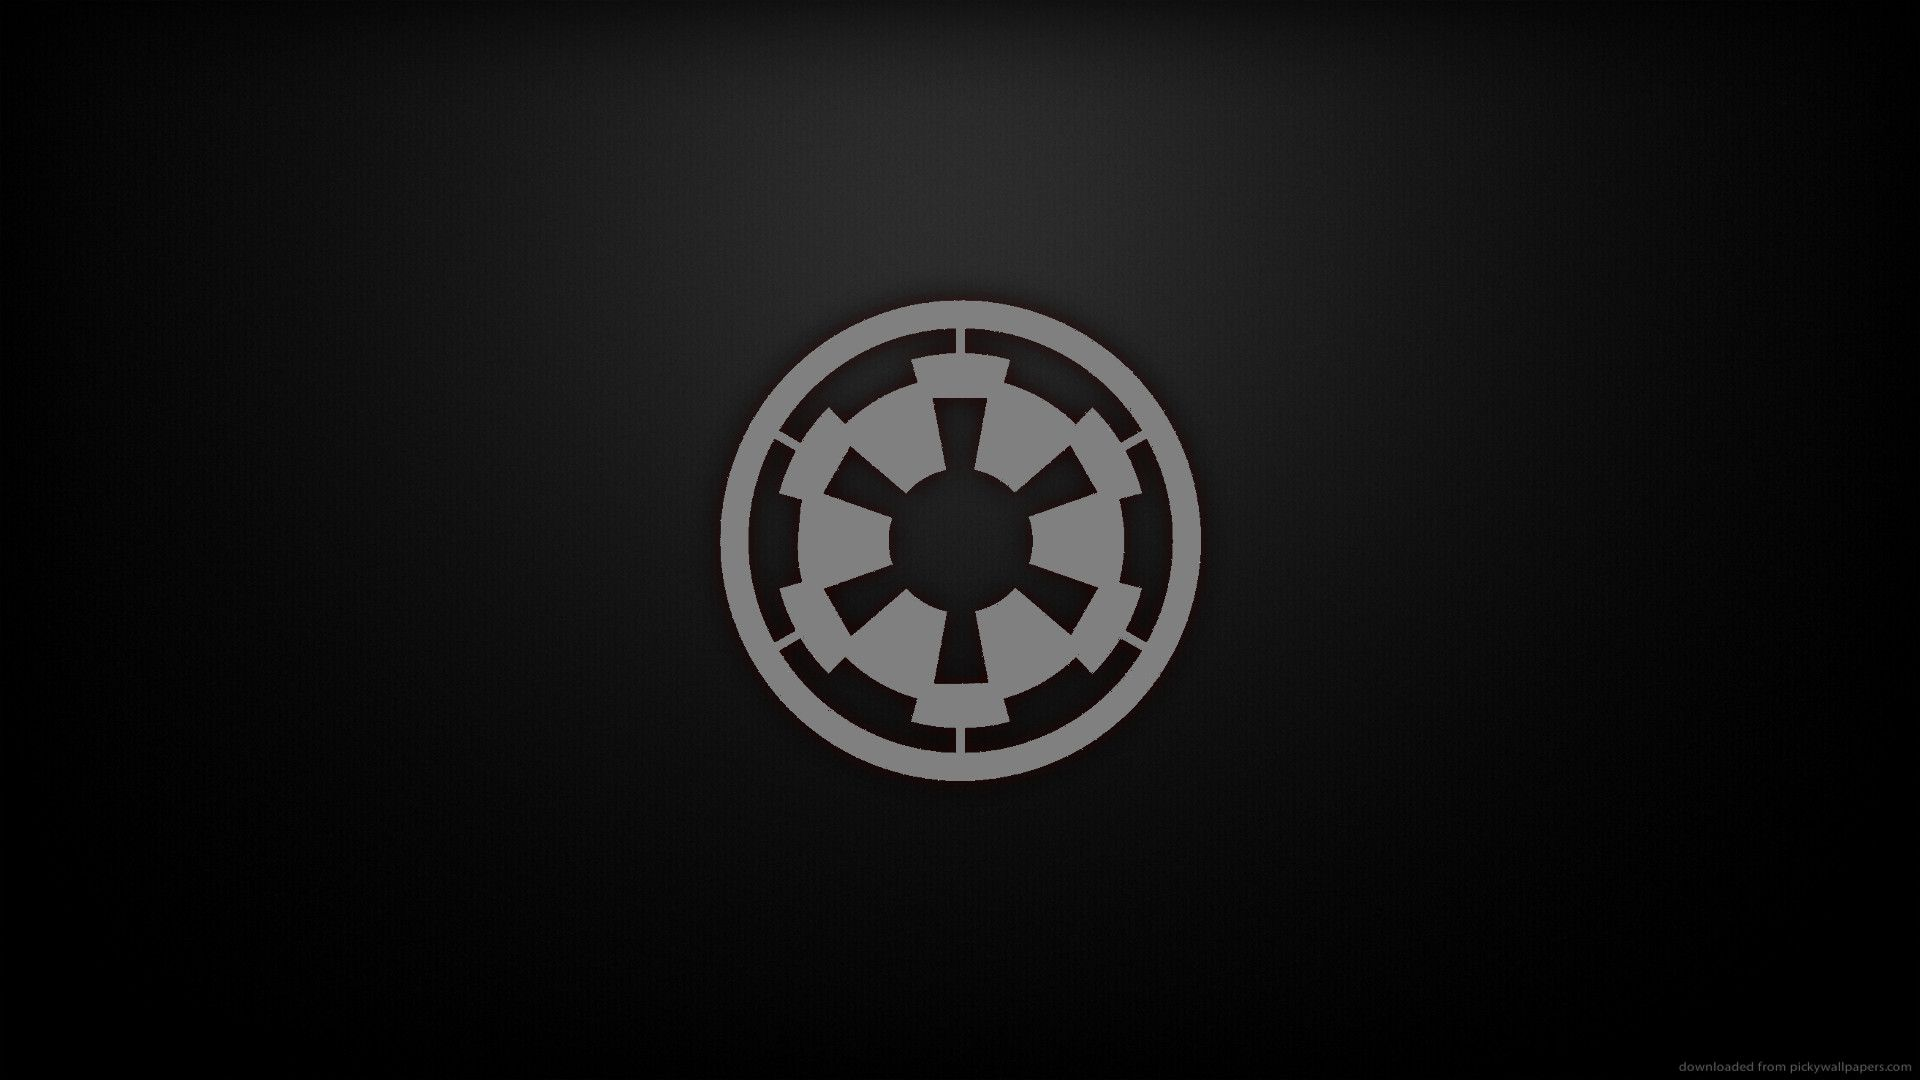 Imperial Wallpapers Top Free Imperial Backgrounds Wallpaperaccess